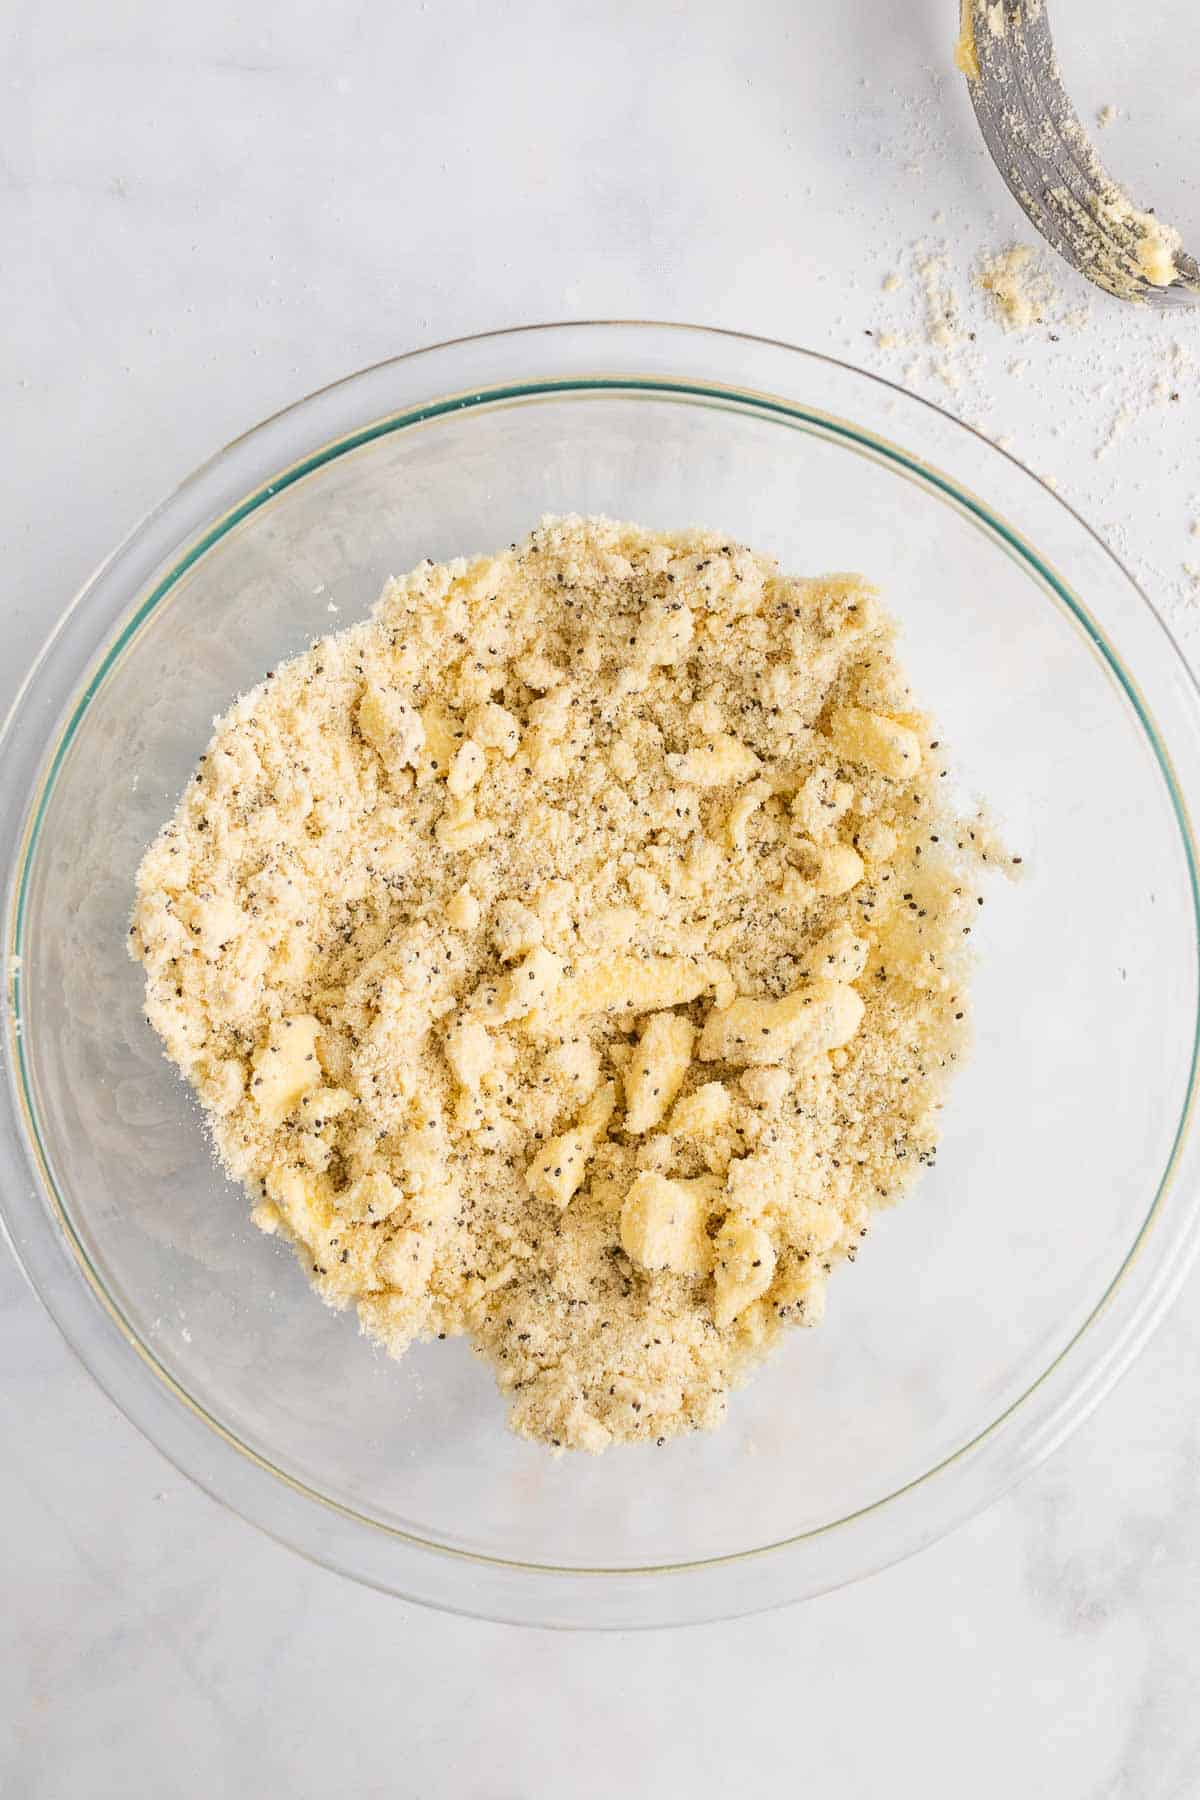 Butter cut into the dry ingredients in a large glass bowl, as seen from above